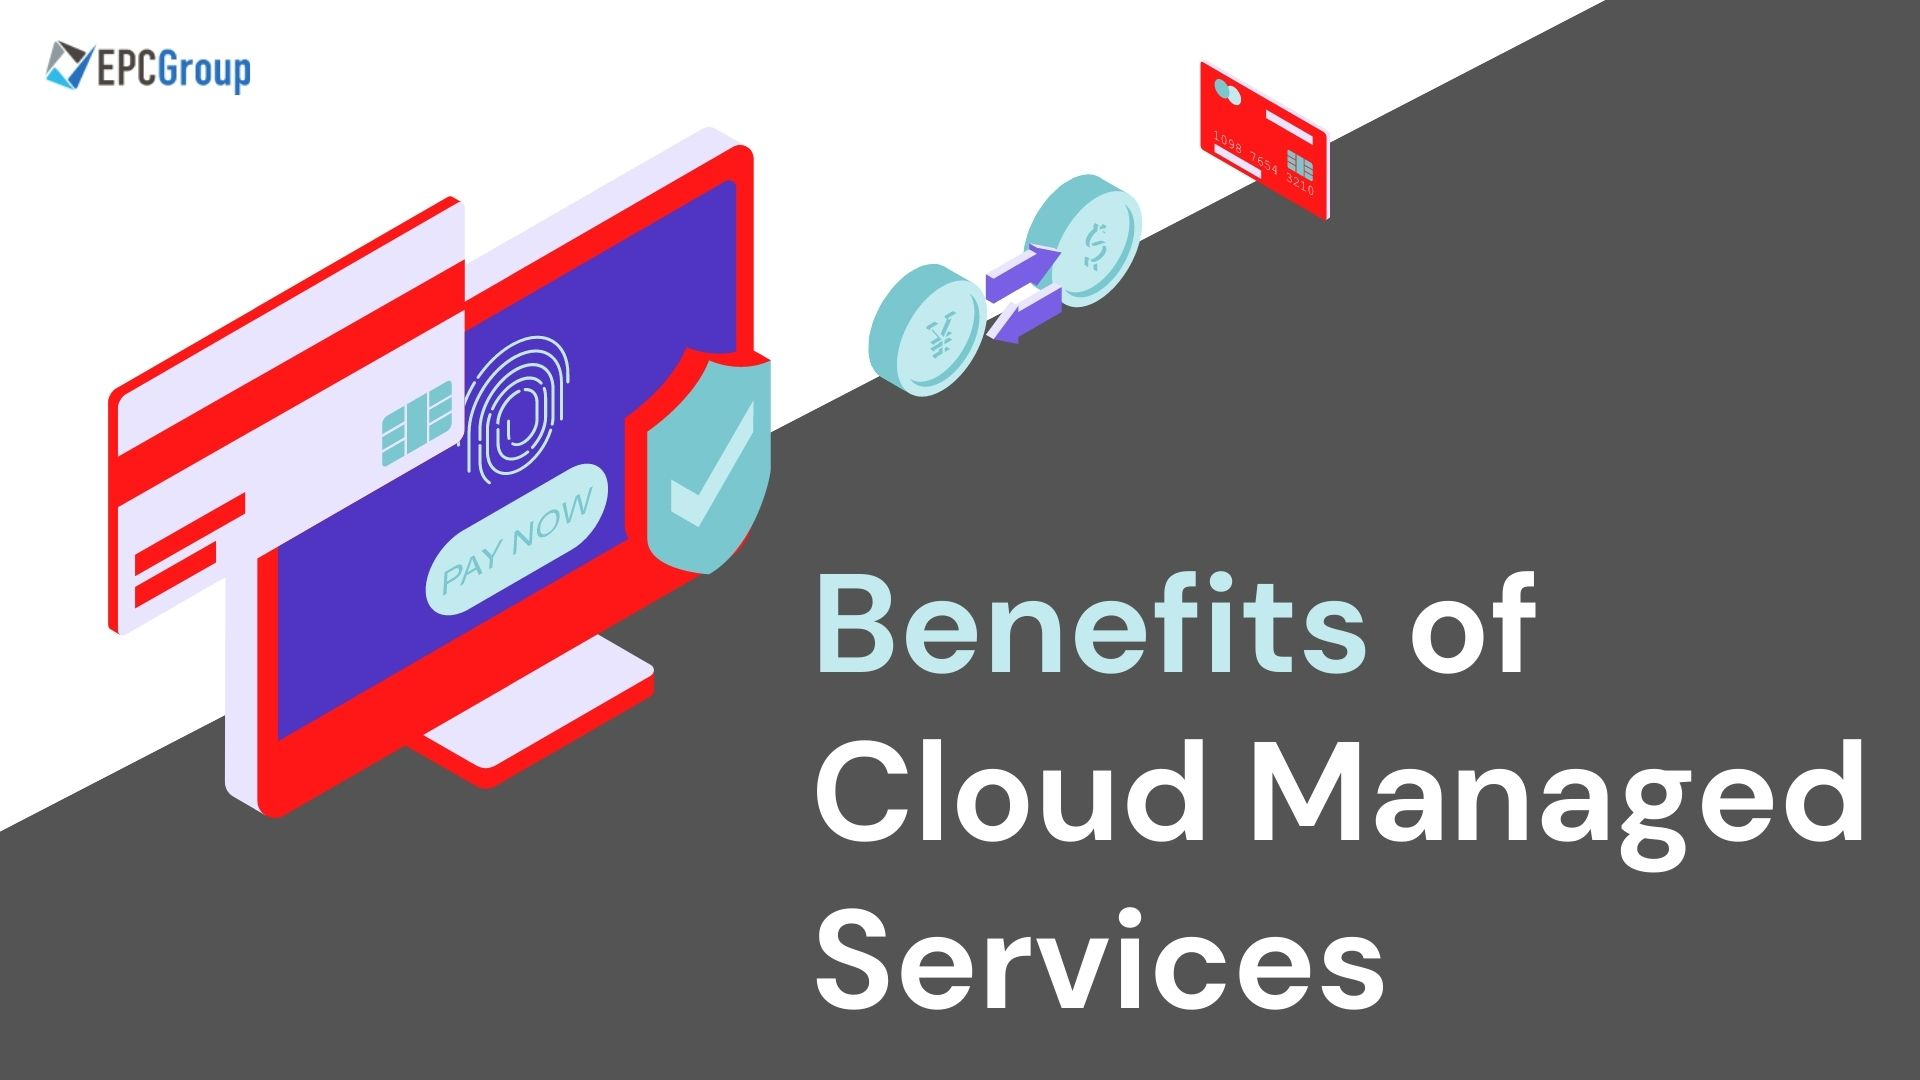 What Are The Benefits of Cloud Managed Services - thumb image